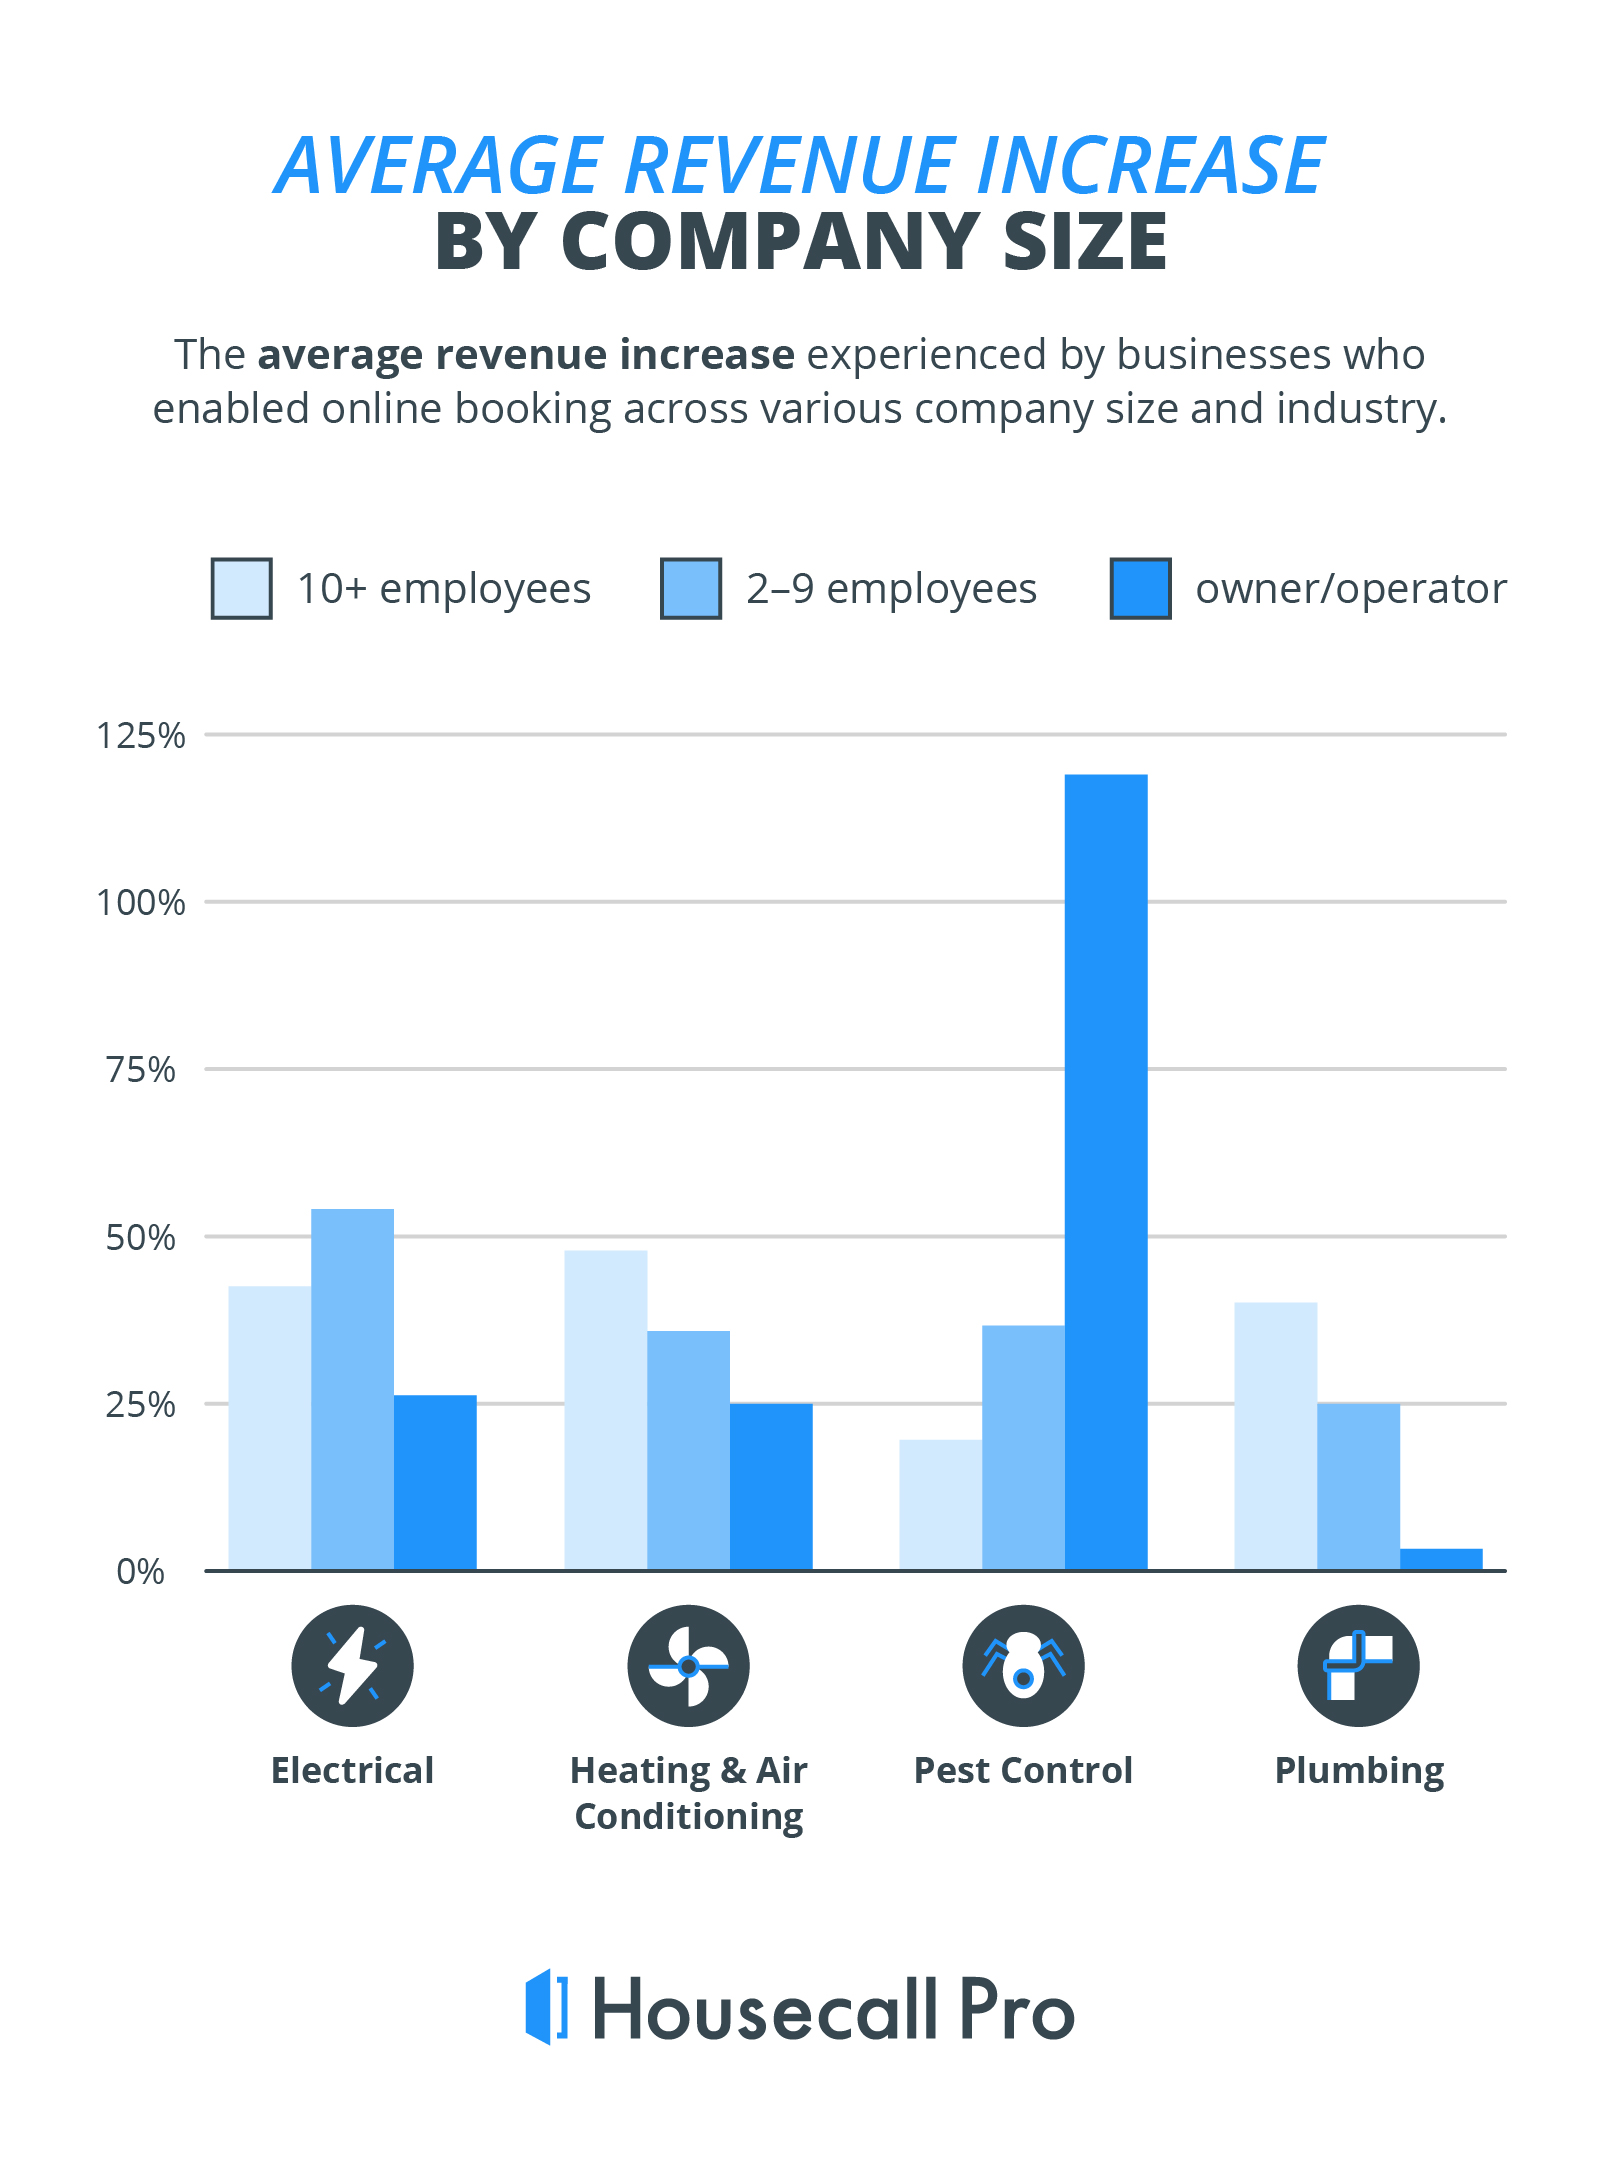 revenue increase by various company sizes after implementing online booking features